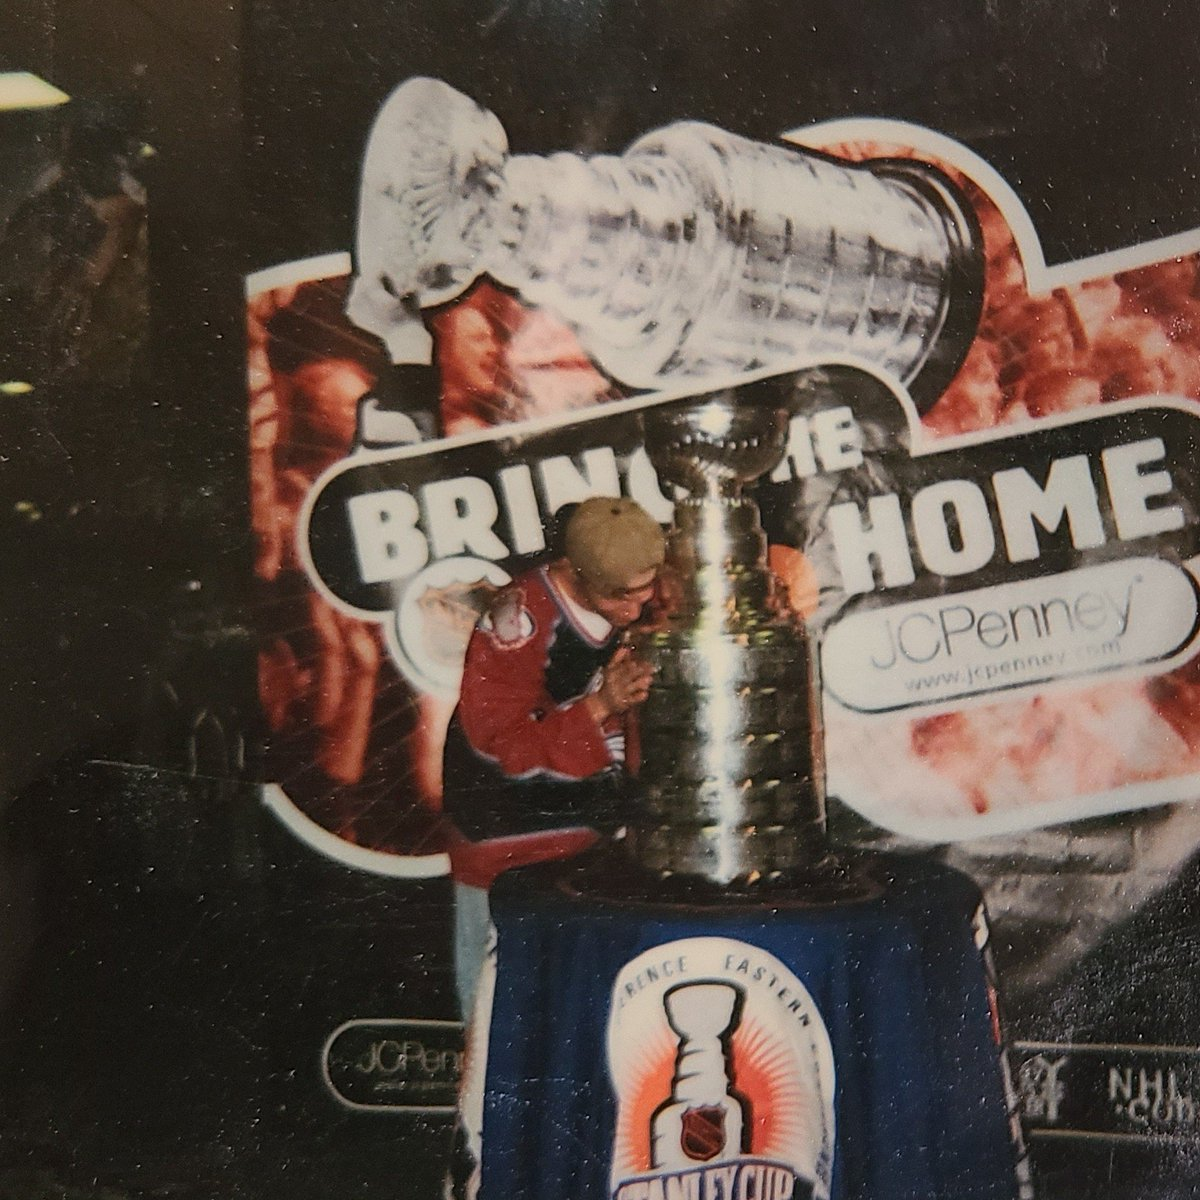 In honor of the crazy 24-team @nhl tournament, #TBT that time I got to kiss the Stanley Cup circa 1999 l. #hockey